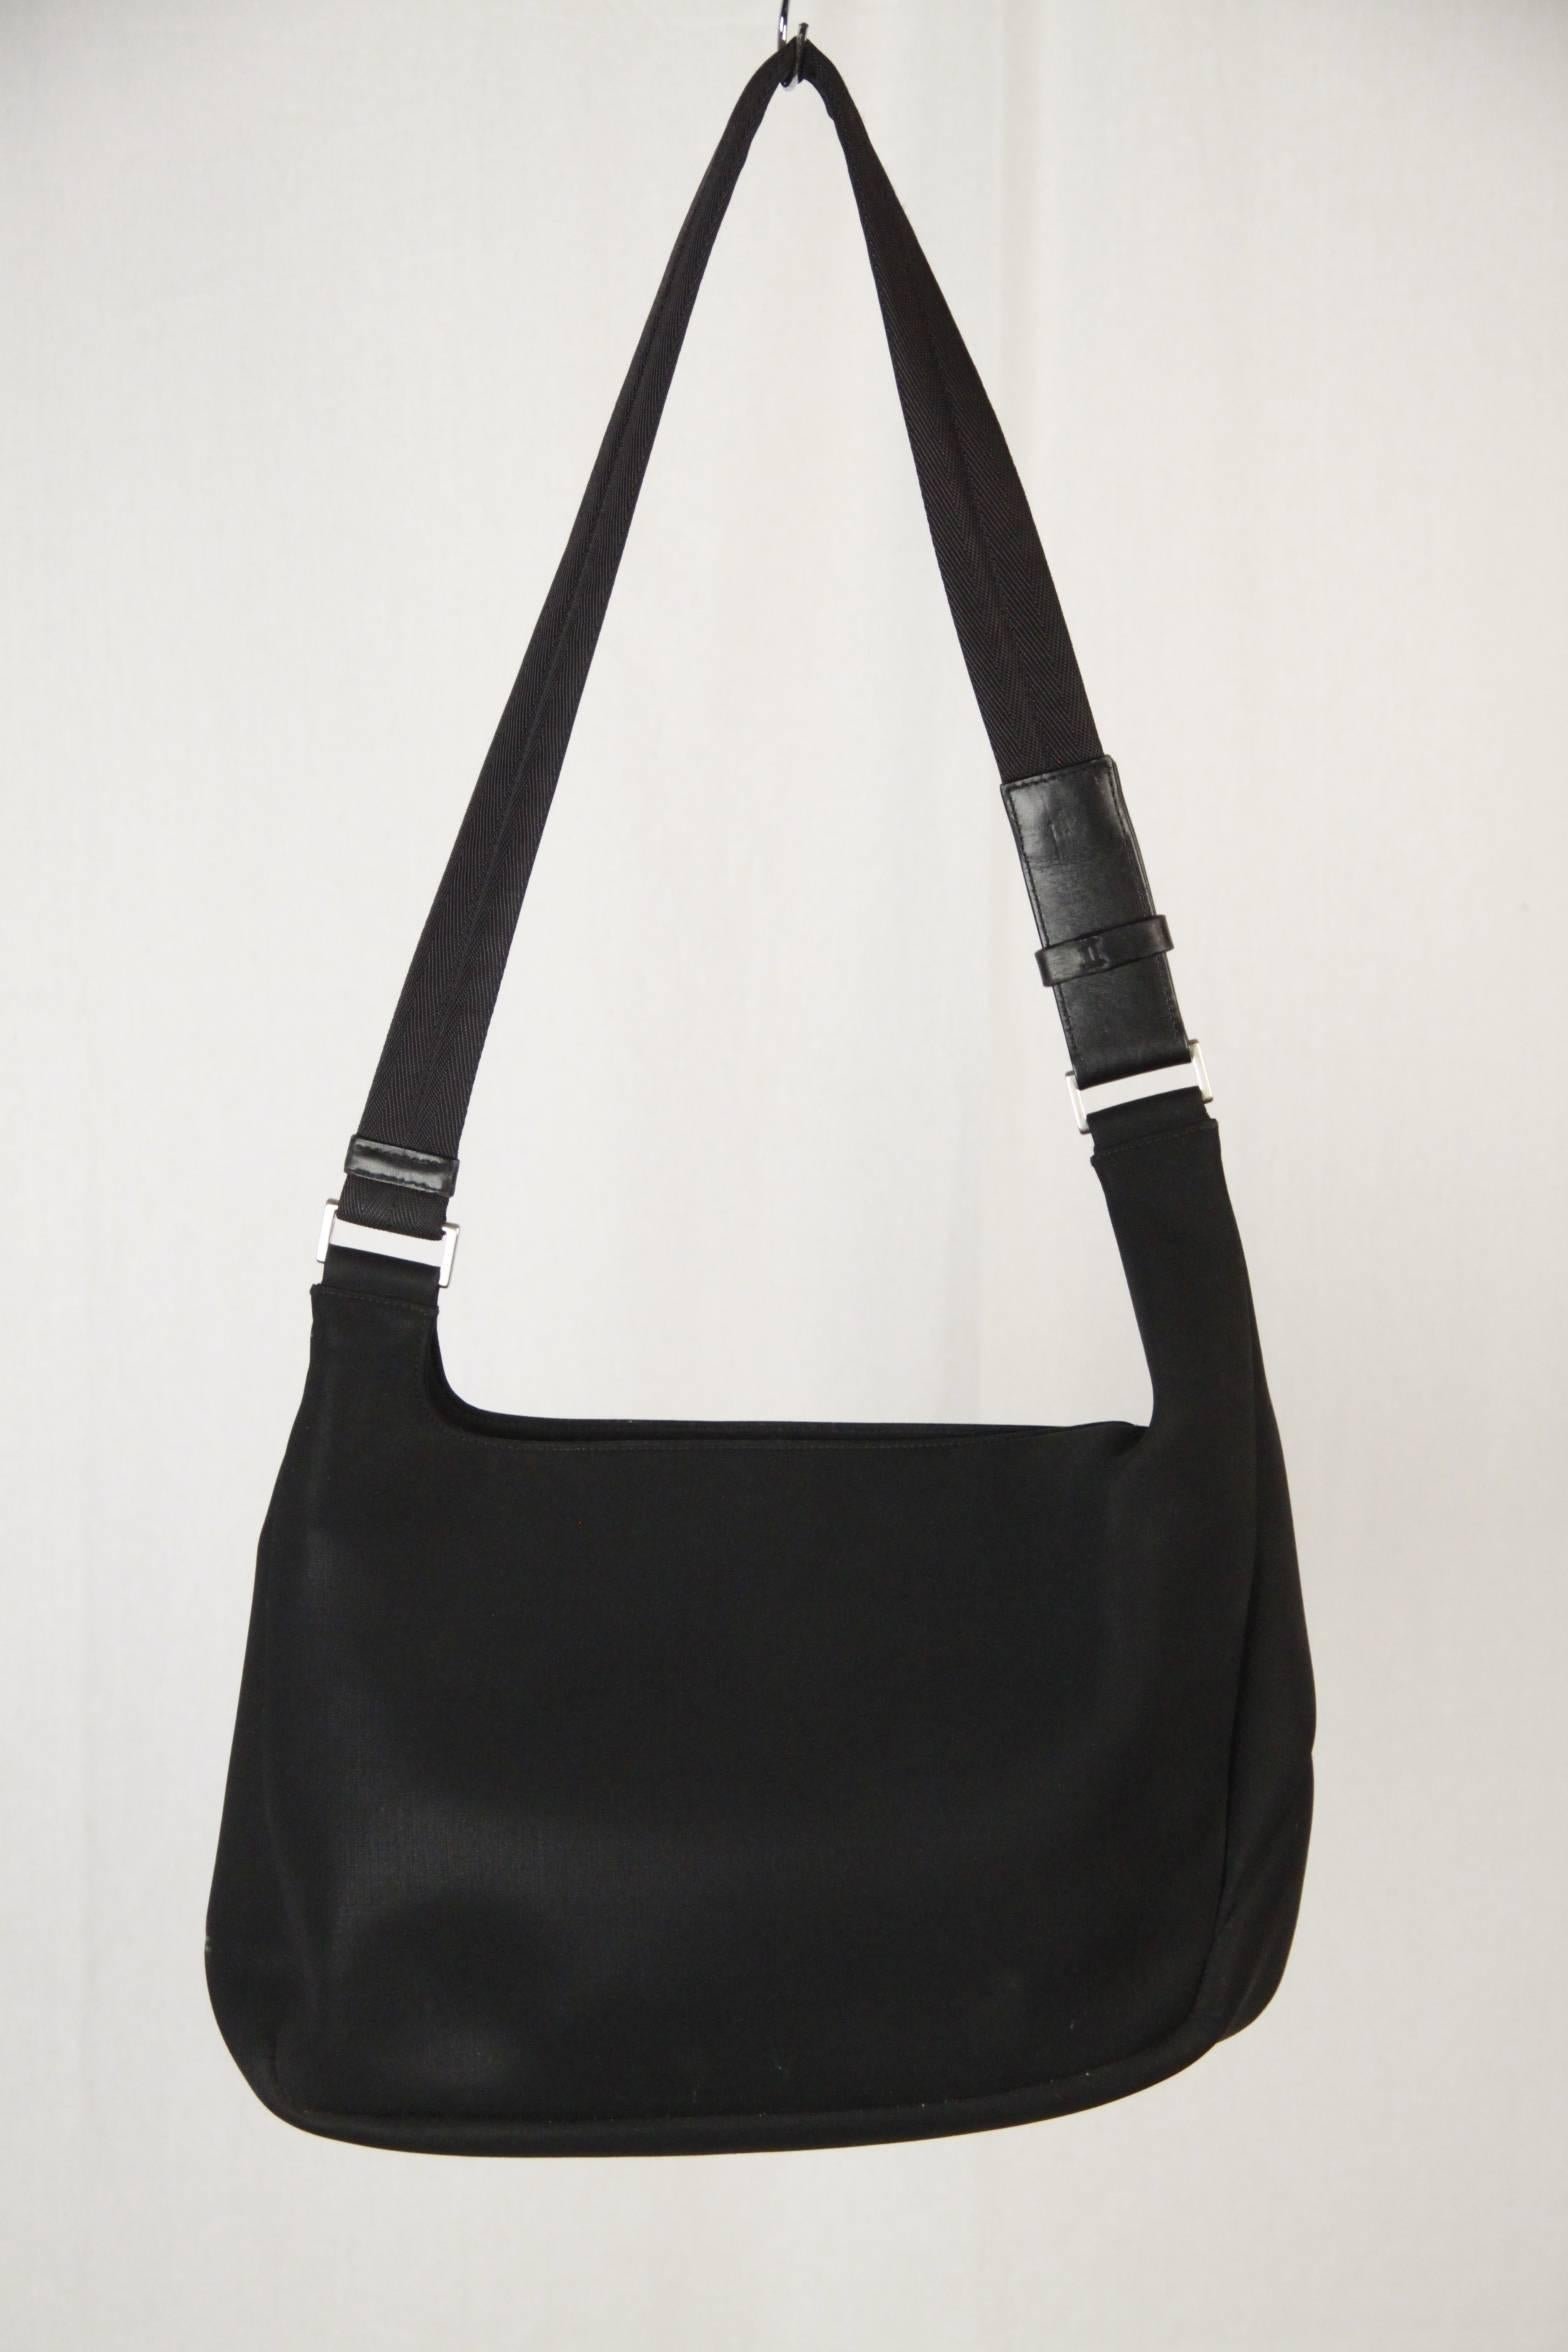 affc978b5254 ... discount prada black neoprene fabric shoulder bag in good condition for  sale in rome rome 7fb89 ...